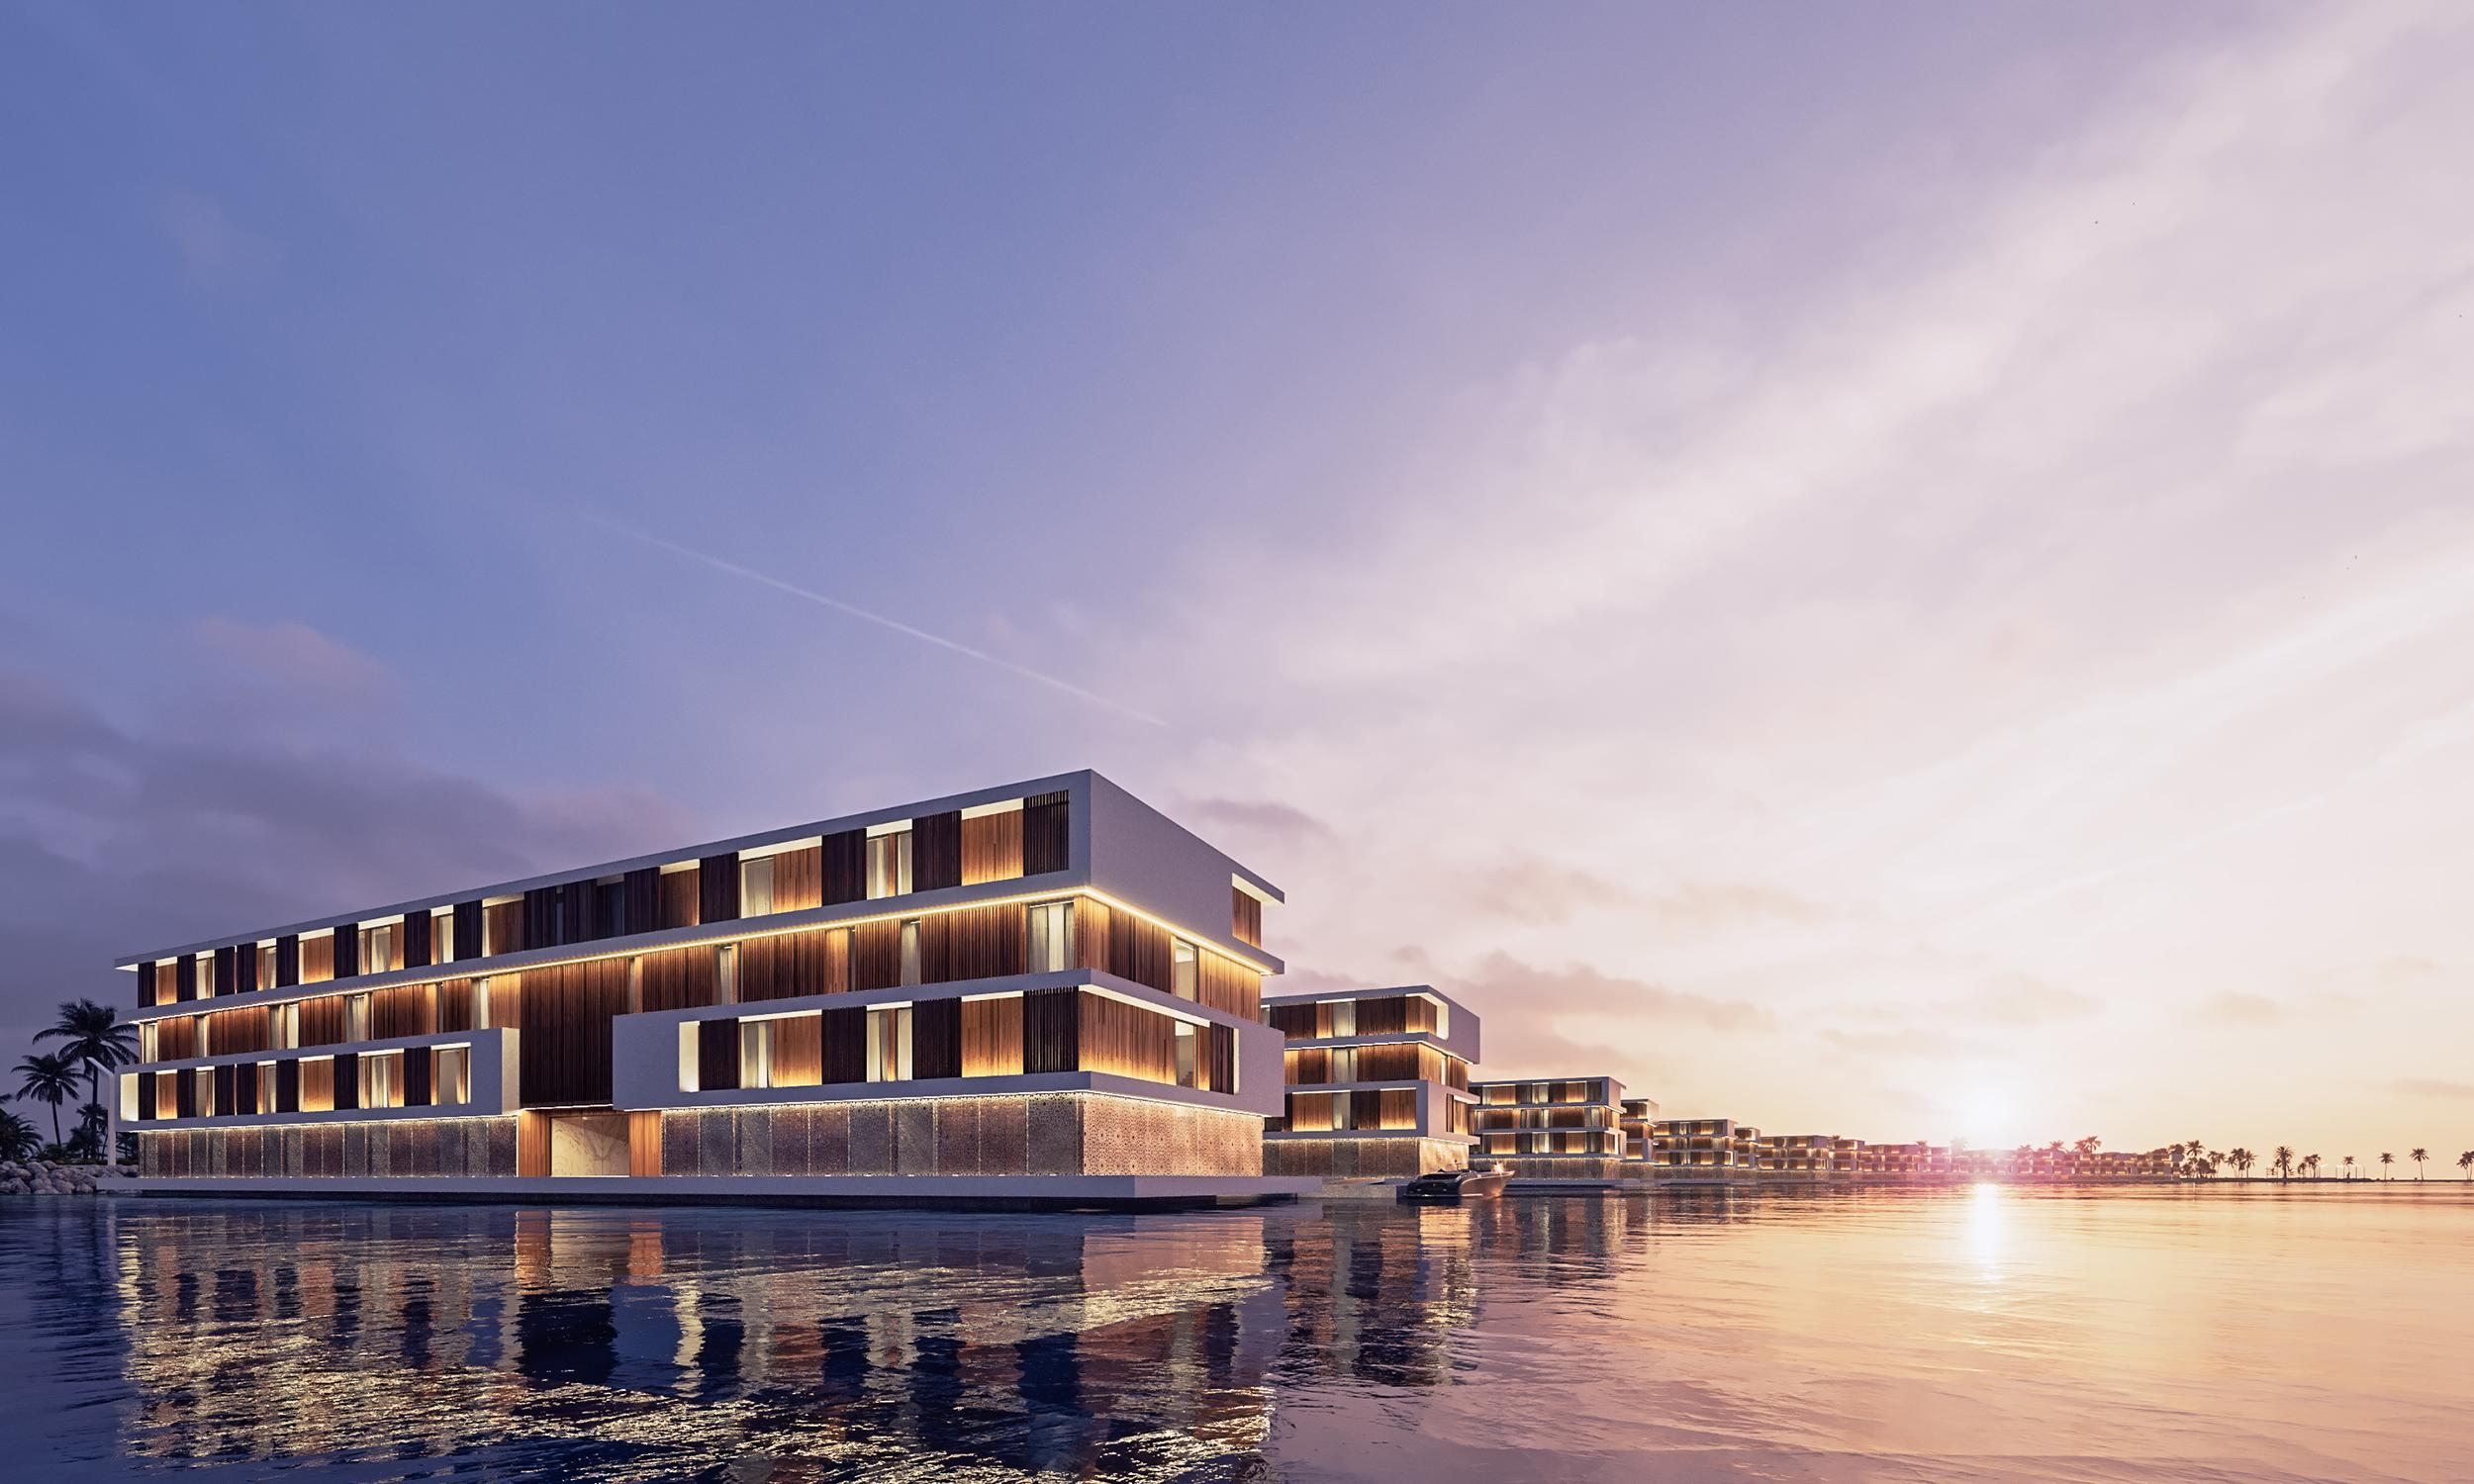 Floating hotels are coming to Qatar for the 2022 World Cup